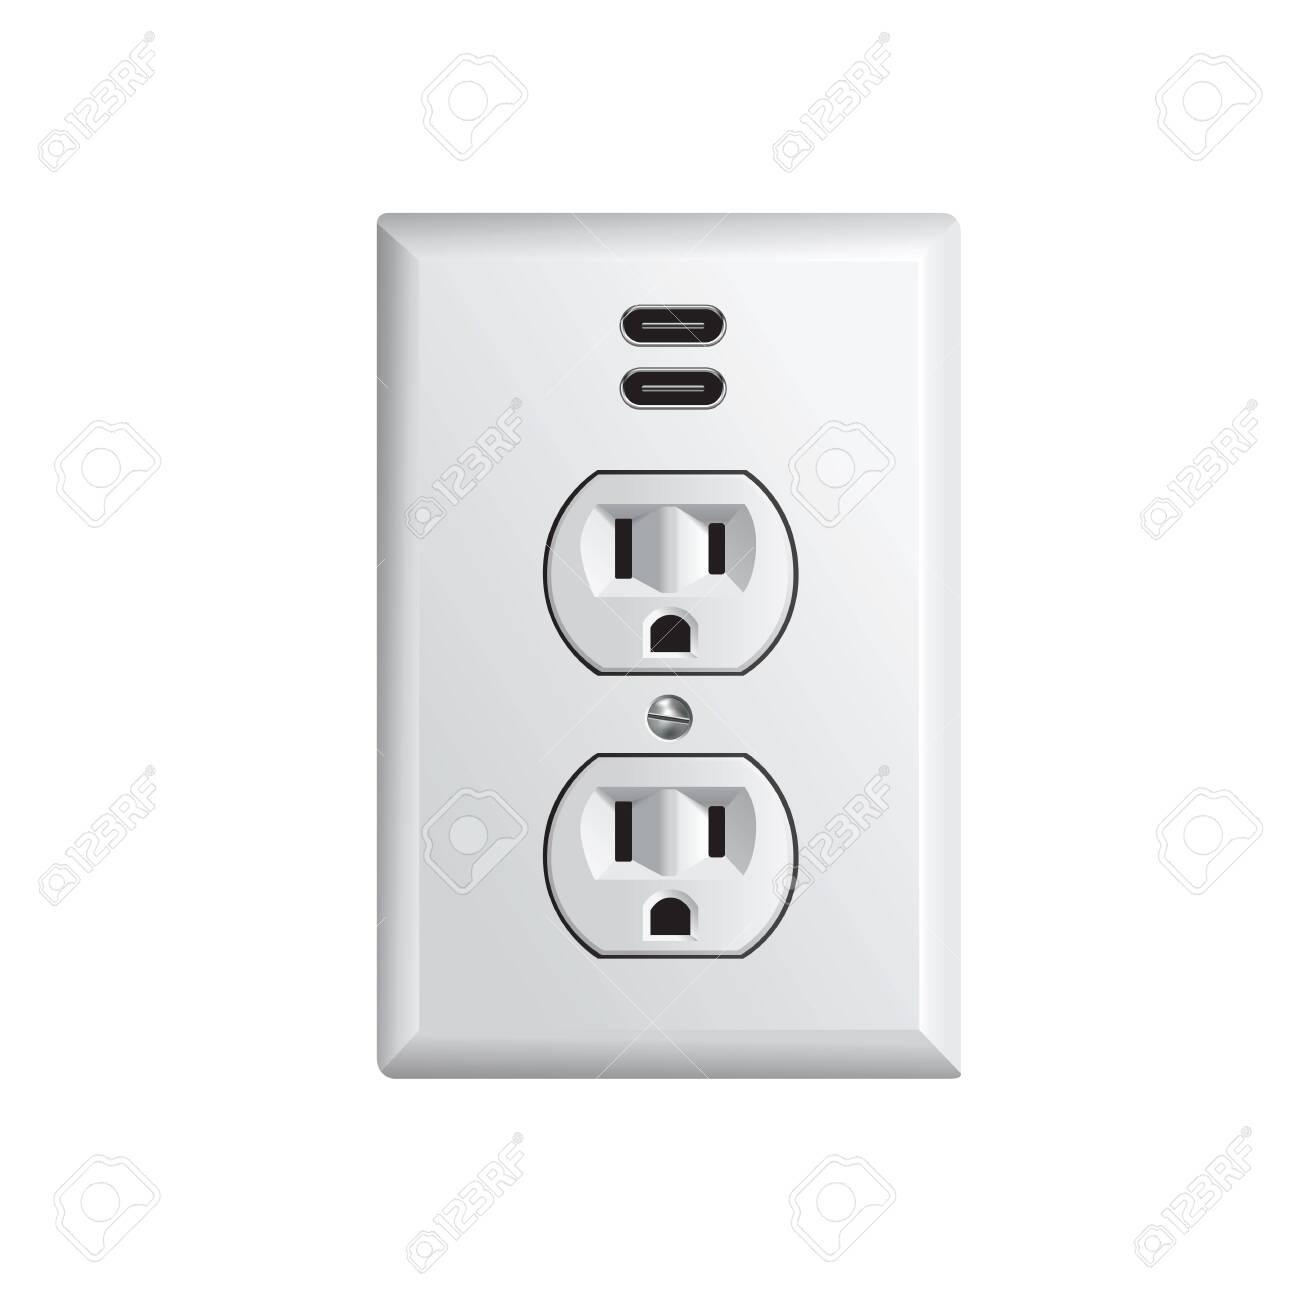 Electrical outlet in the USA, power socket with USB-C - 124352521